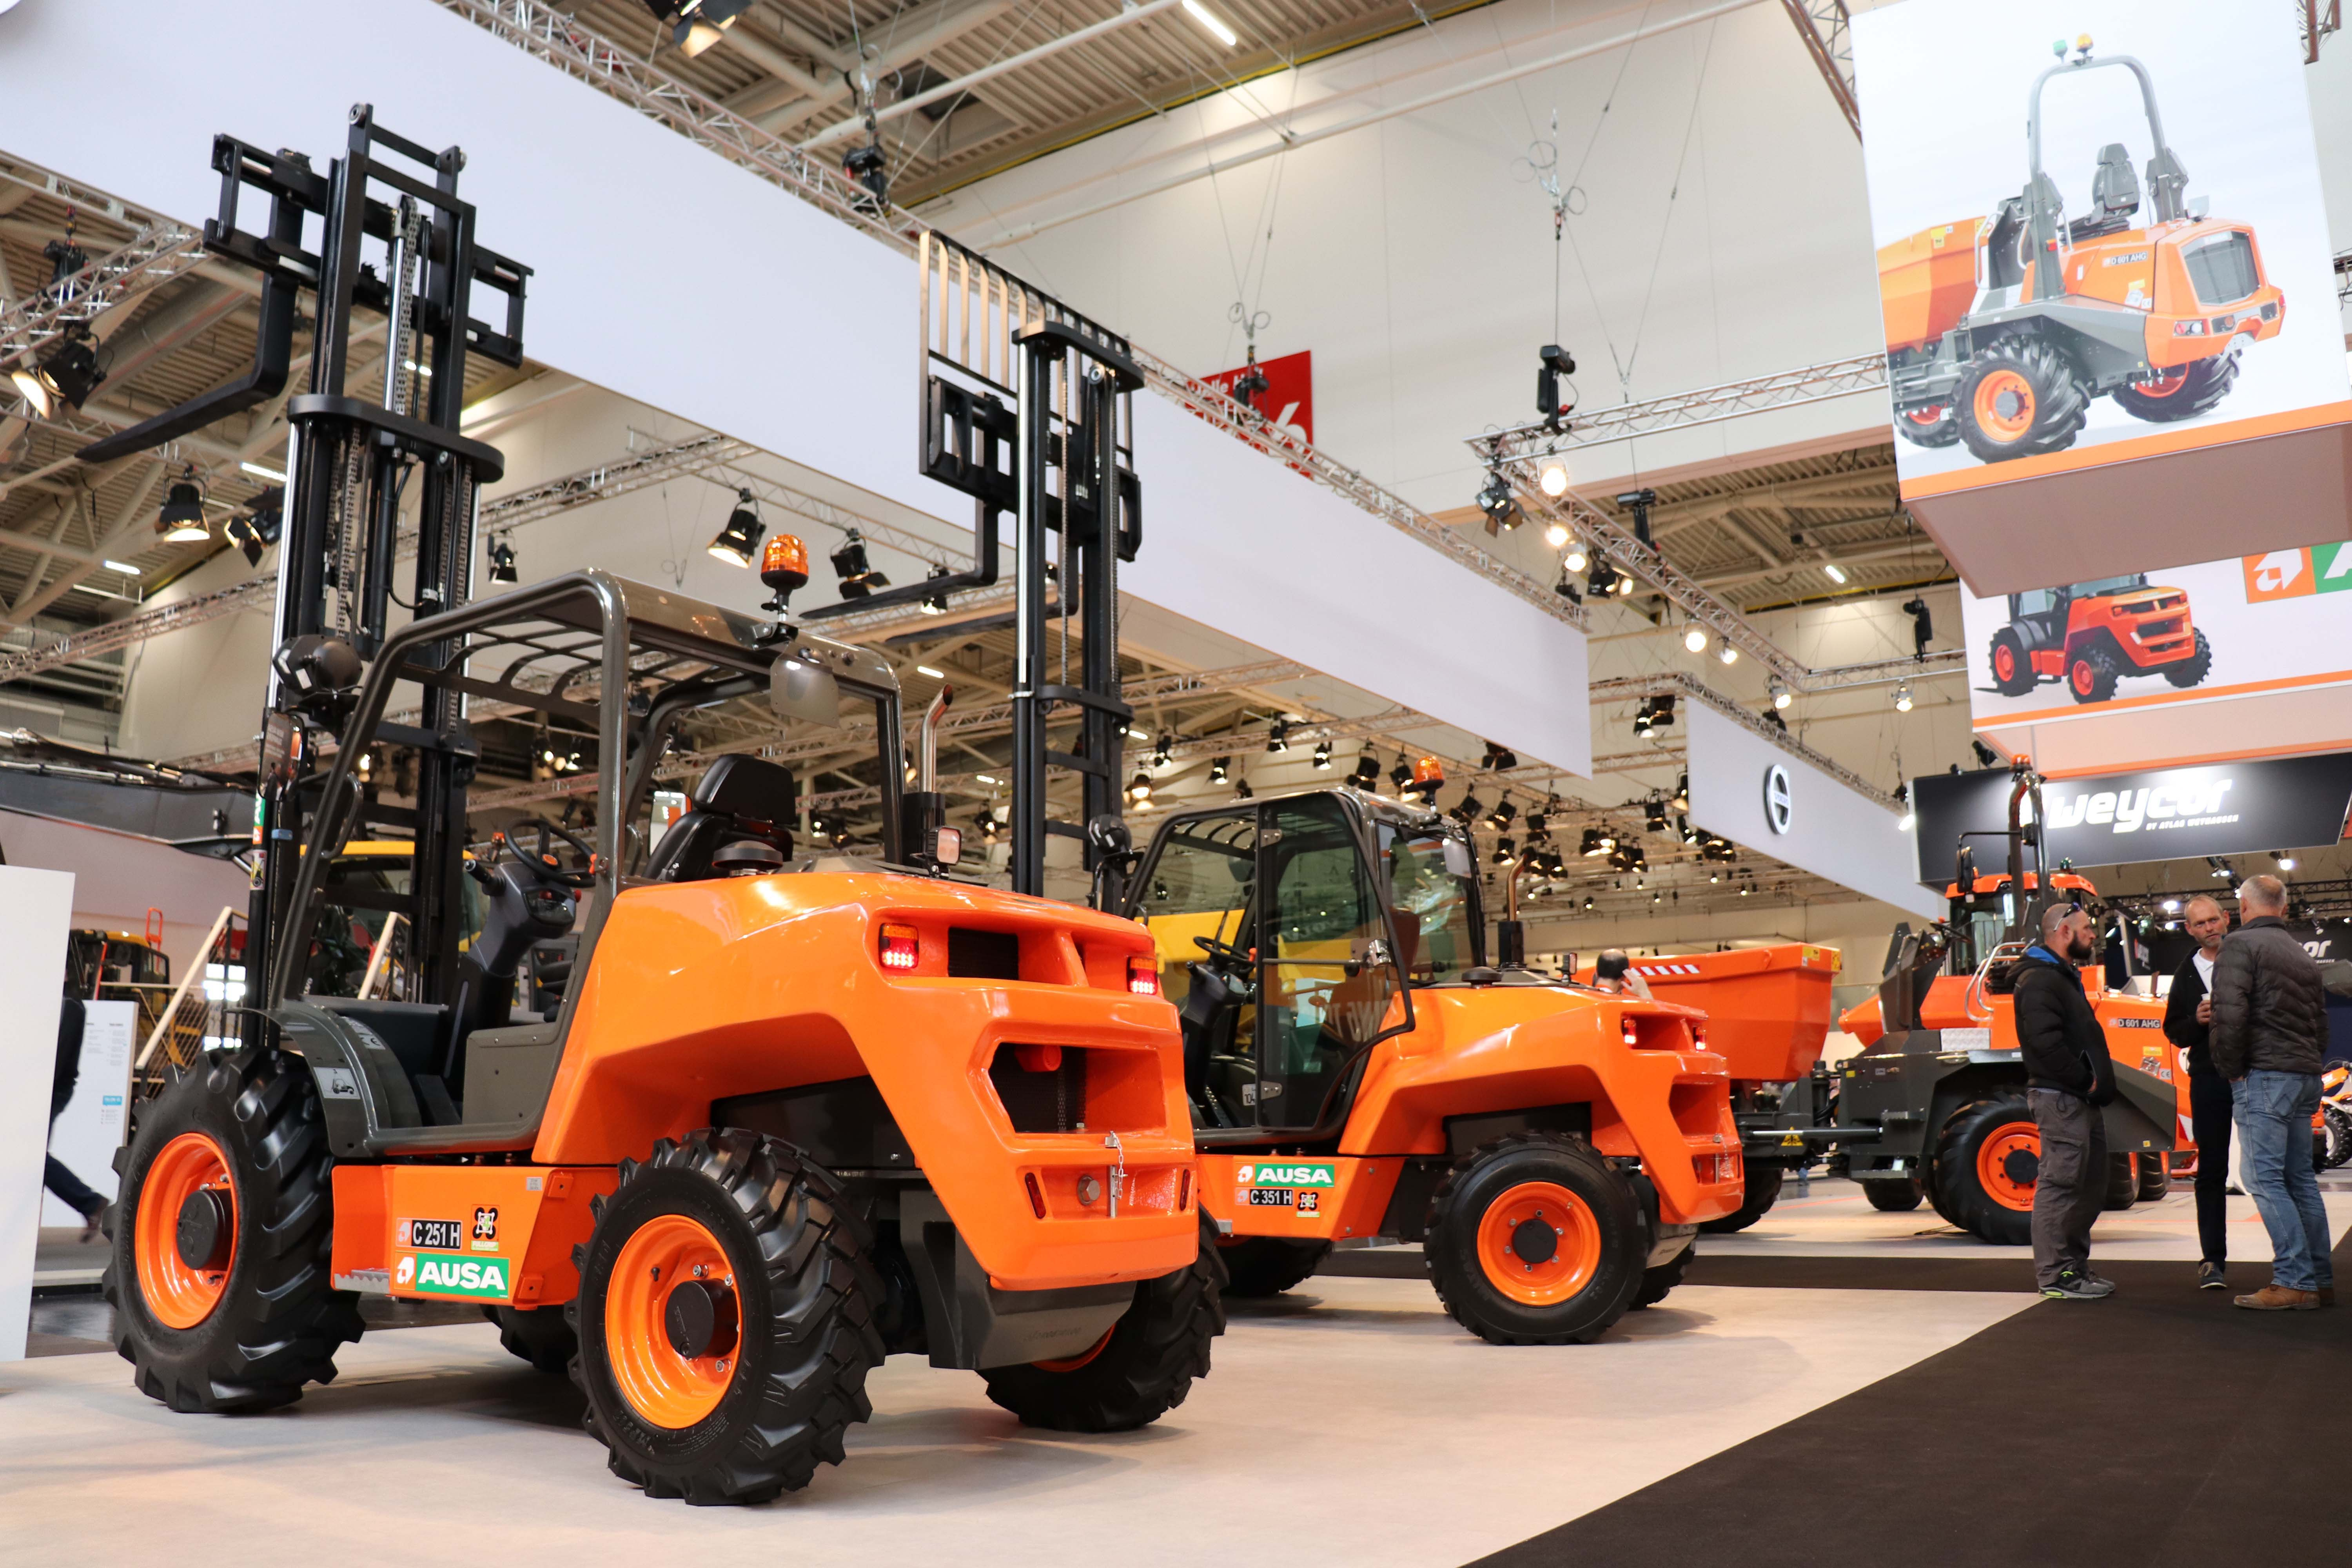 AUSA showcases its revolutionary products at Bauma | AUSA